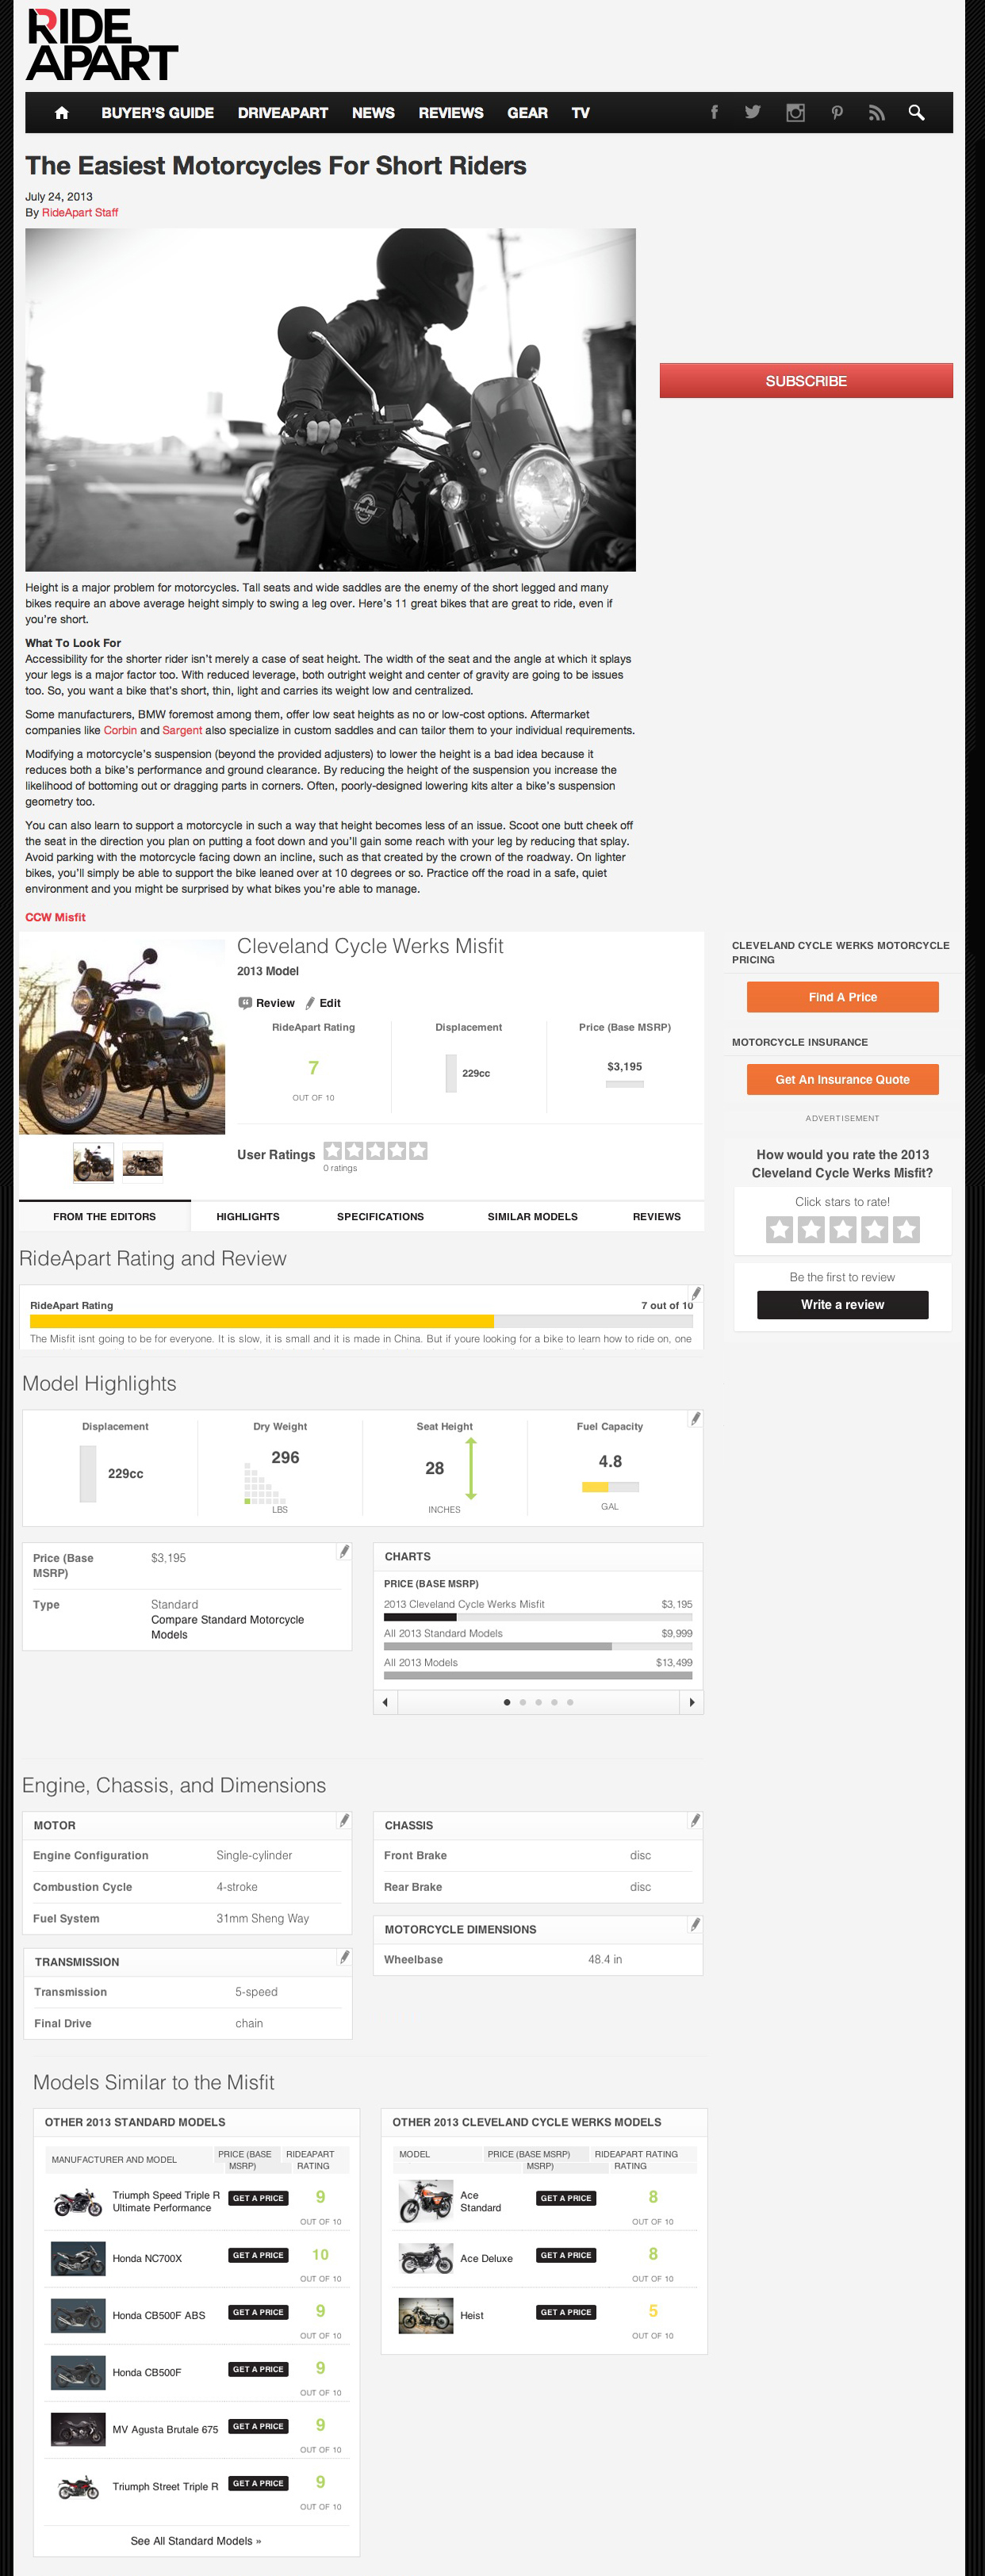 RideApart_07-2013the-easiest-motorcycles-for-short-riders MISFIT.jpg